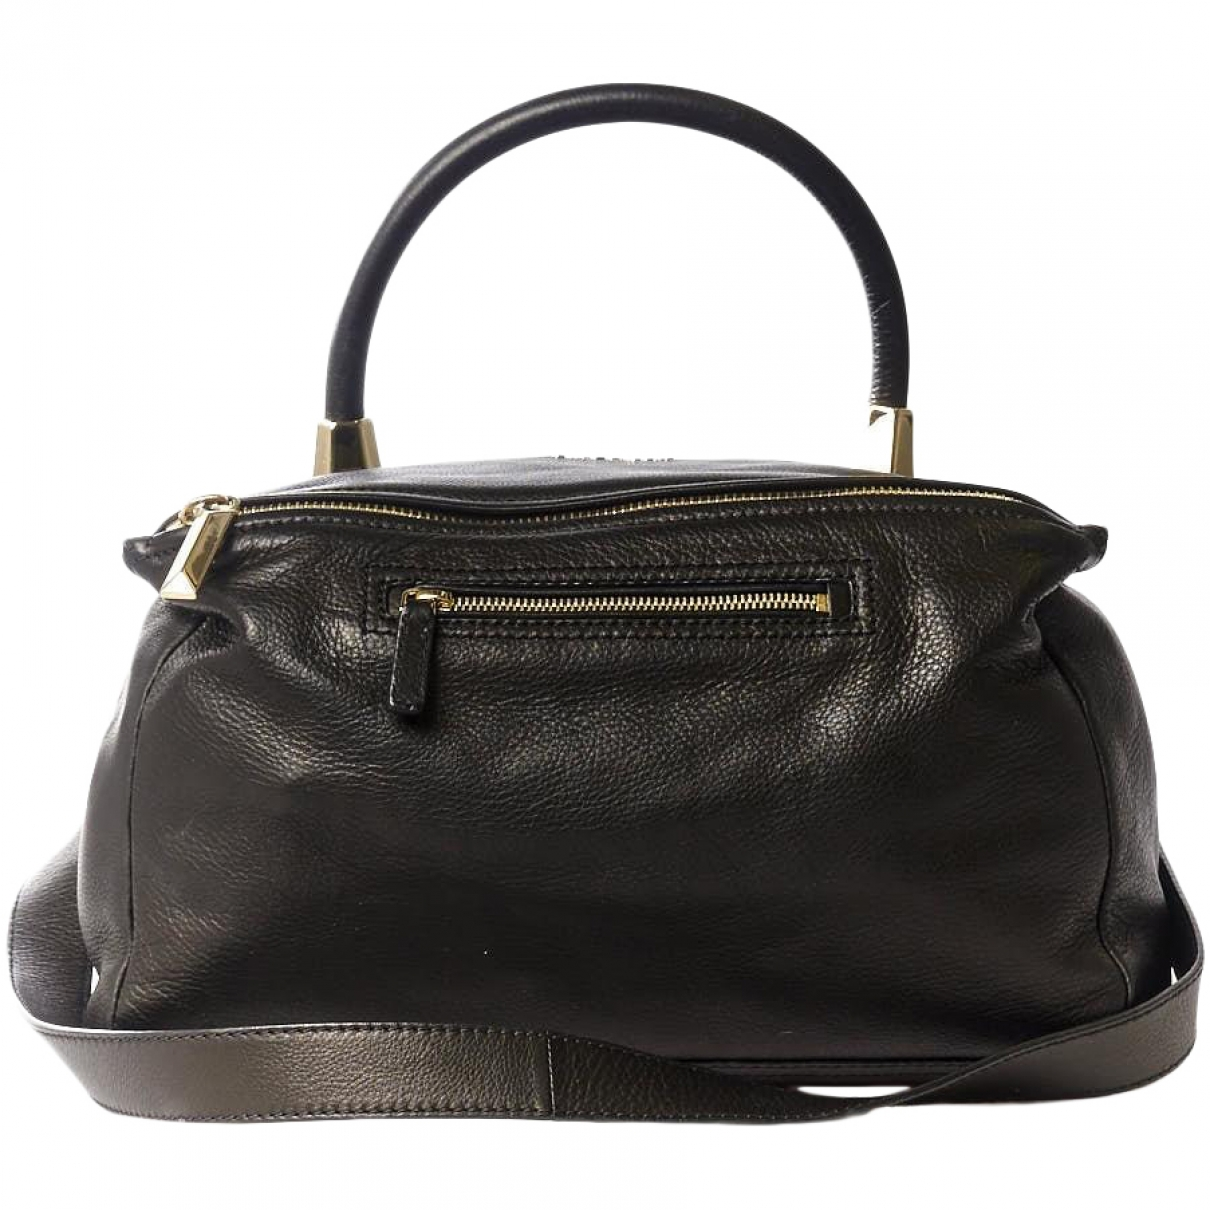 Givenchy Pandora Black Leather handbag for Women \N